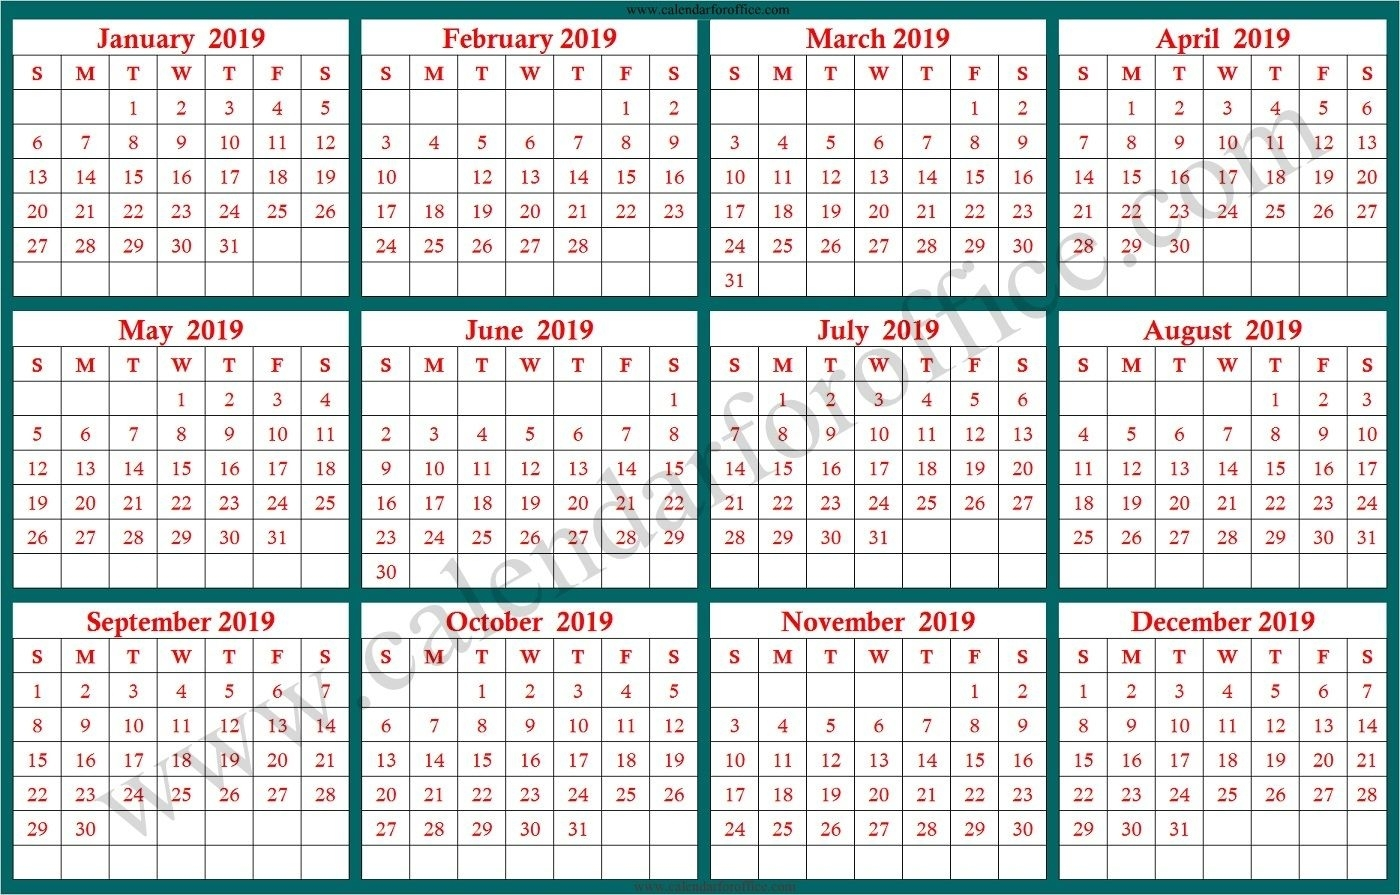 019 Year Calendar Bangla | Calendar, 2019 Calendar, Yearly pertaining to 2020 Year Calendar Printable Free Bangla